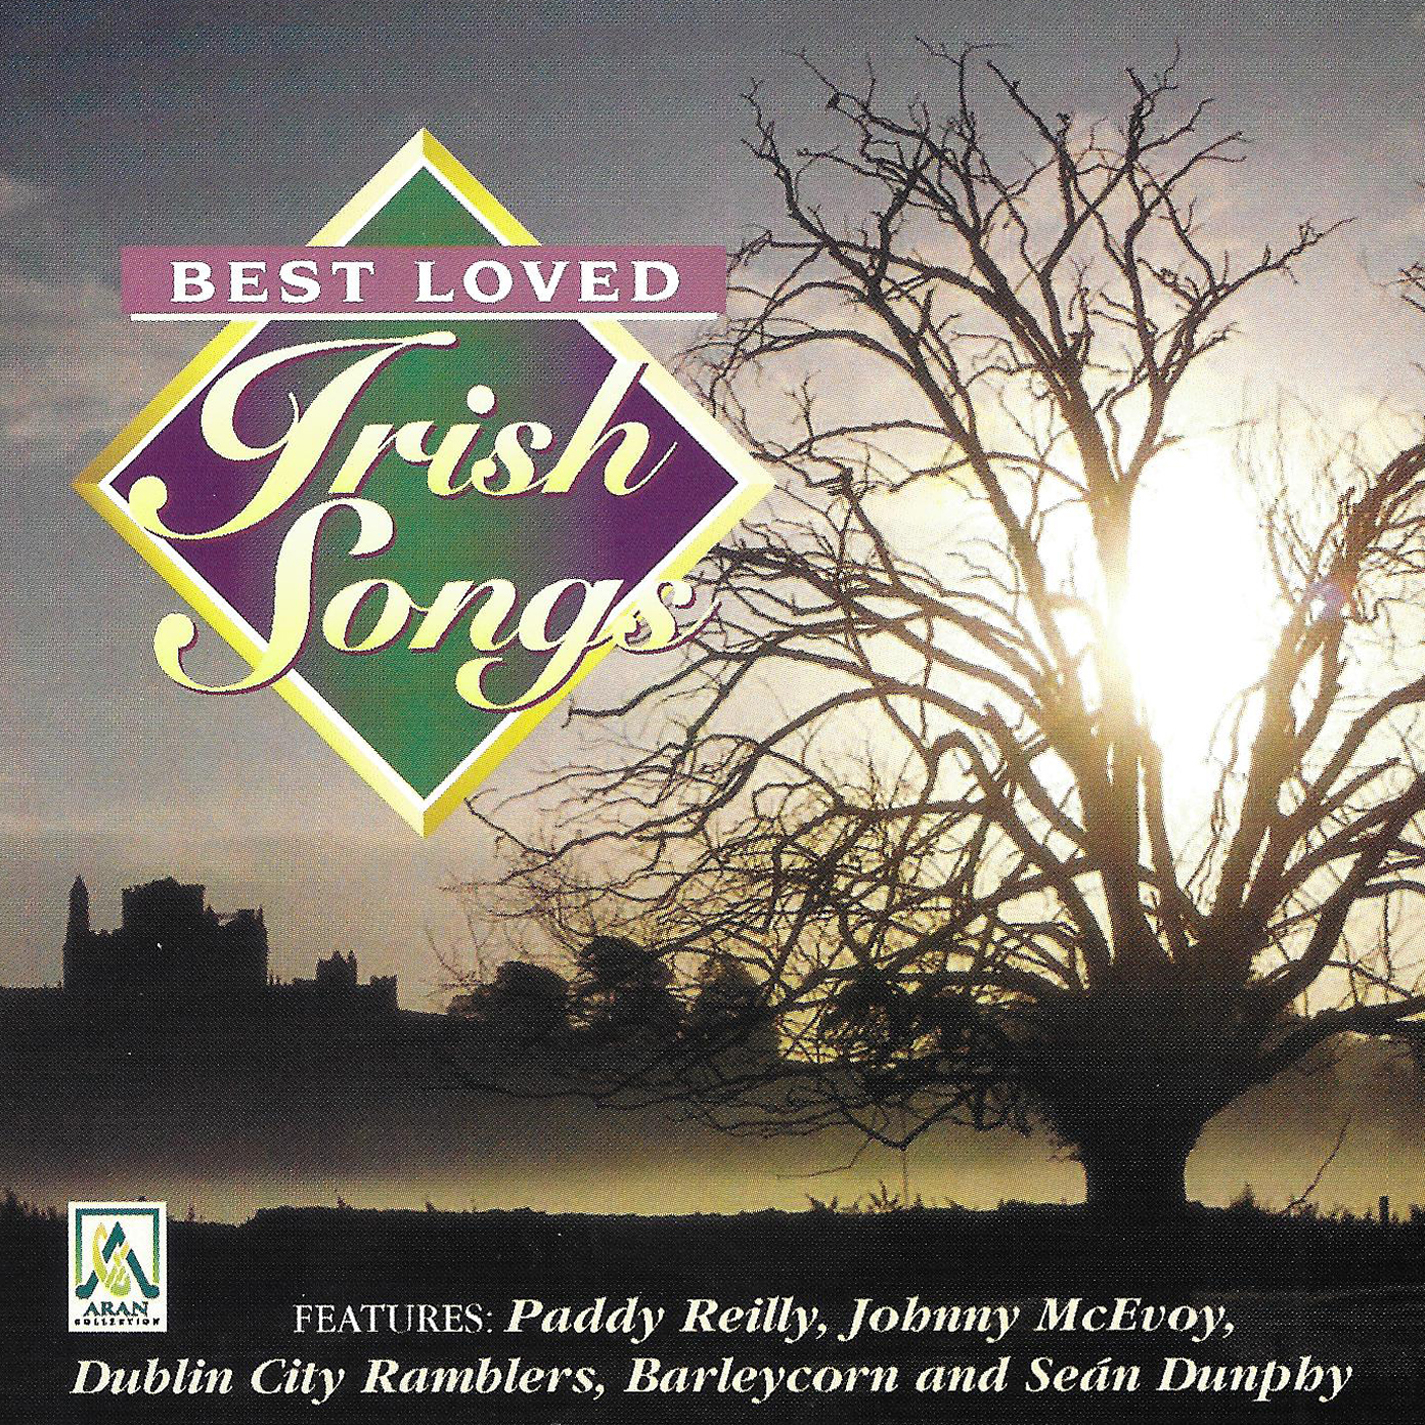 Best_Loved_Irish_Songs_160